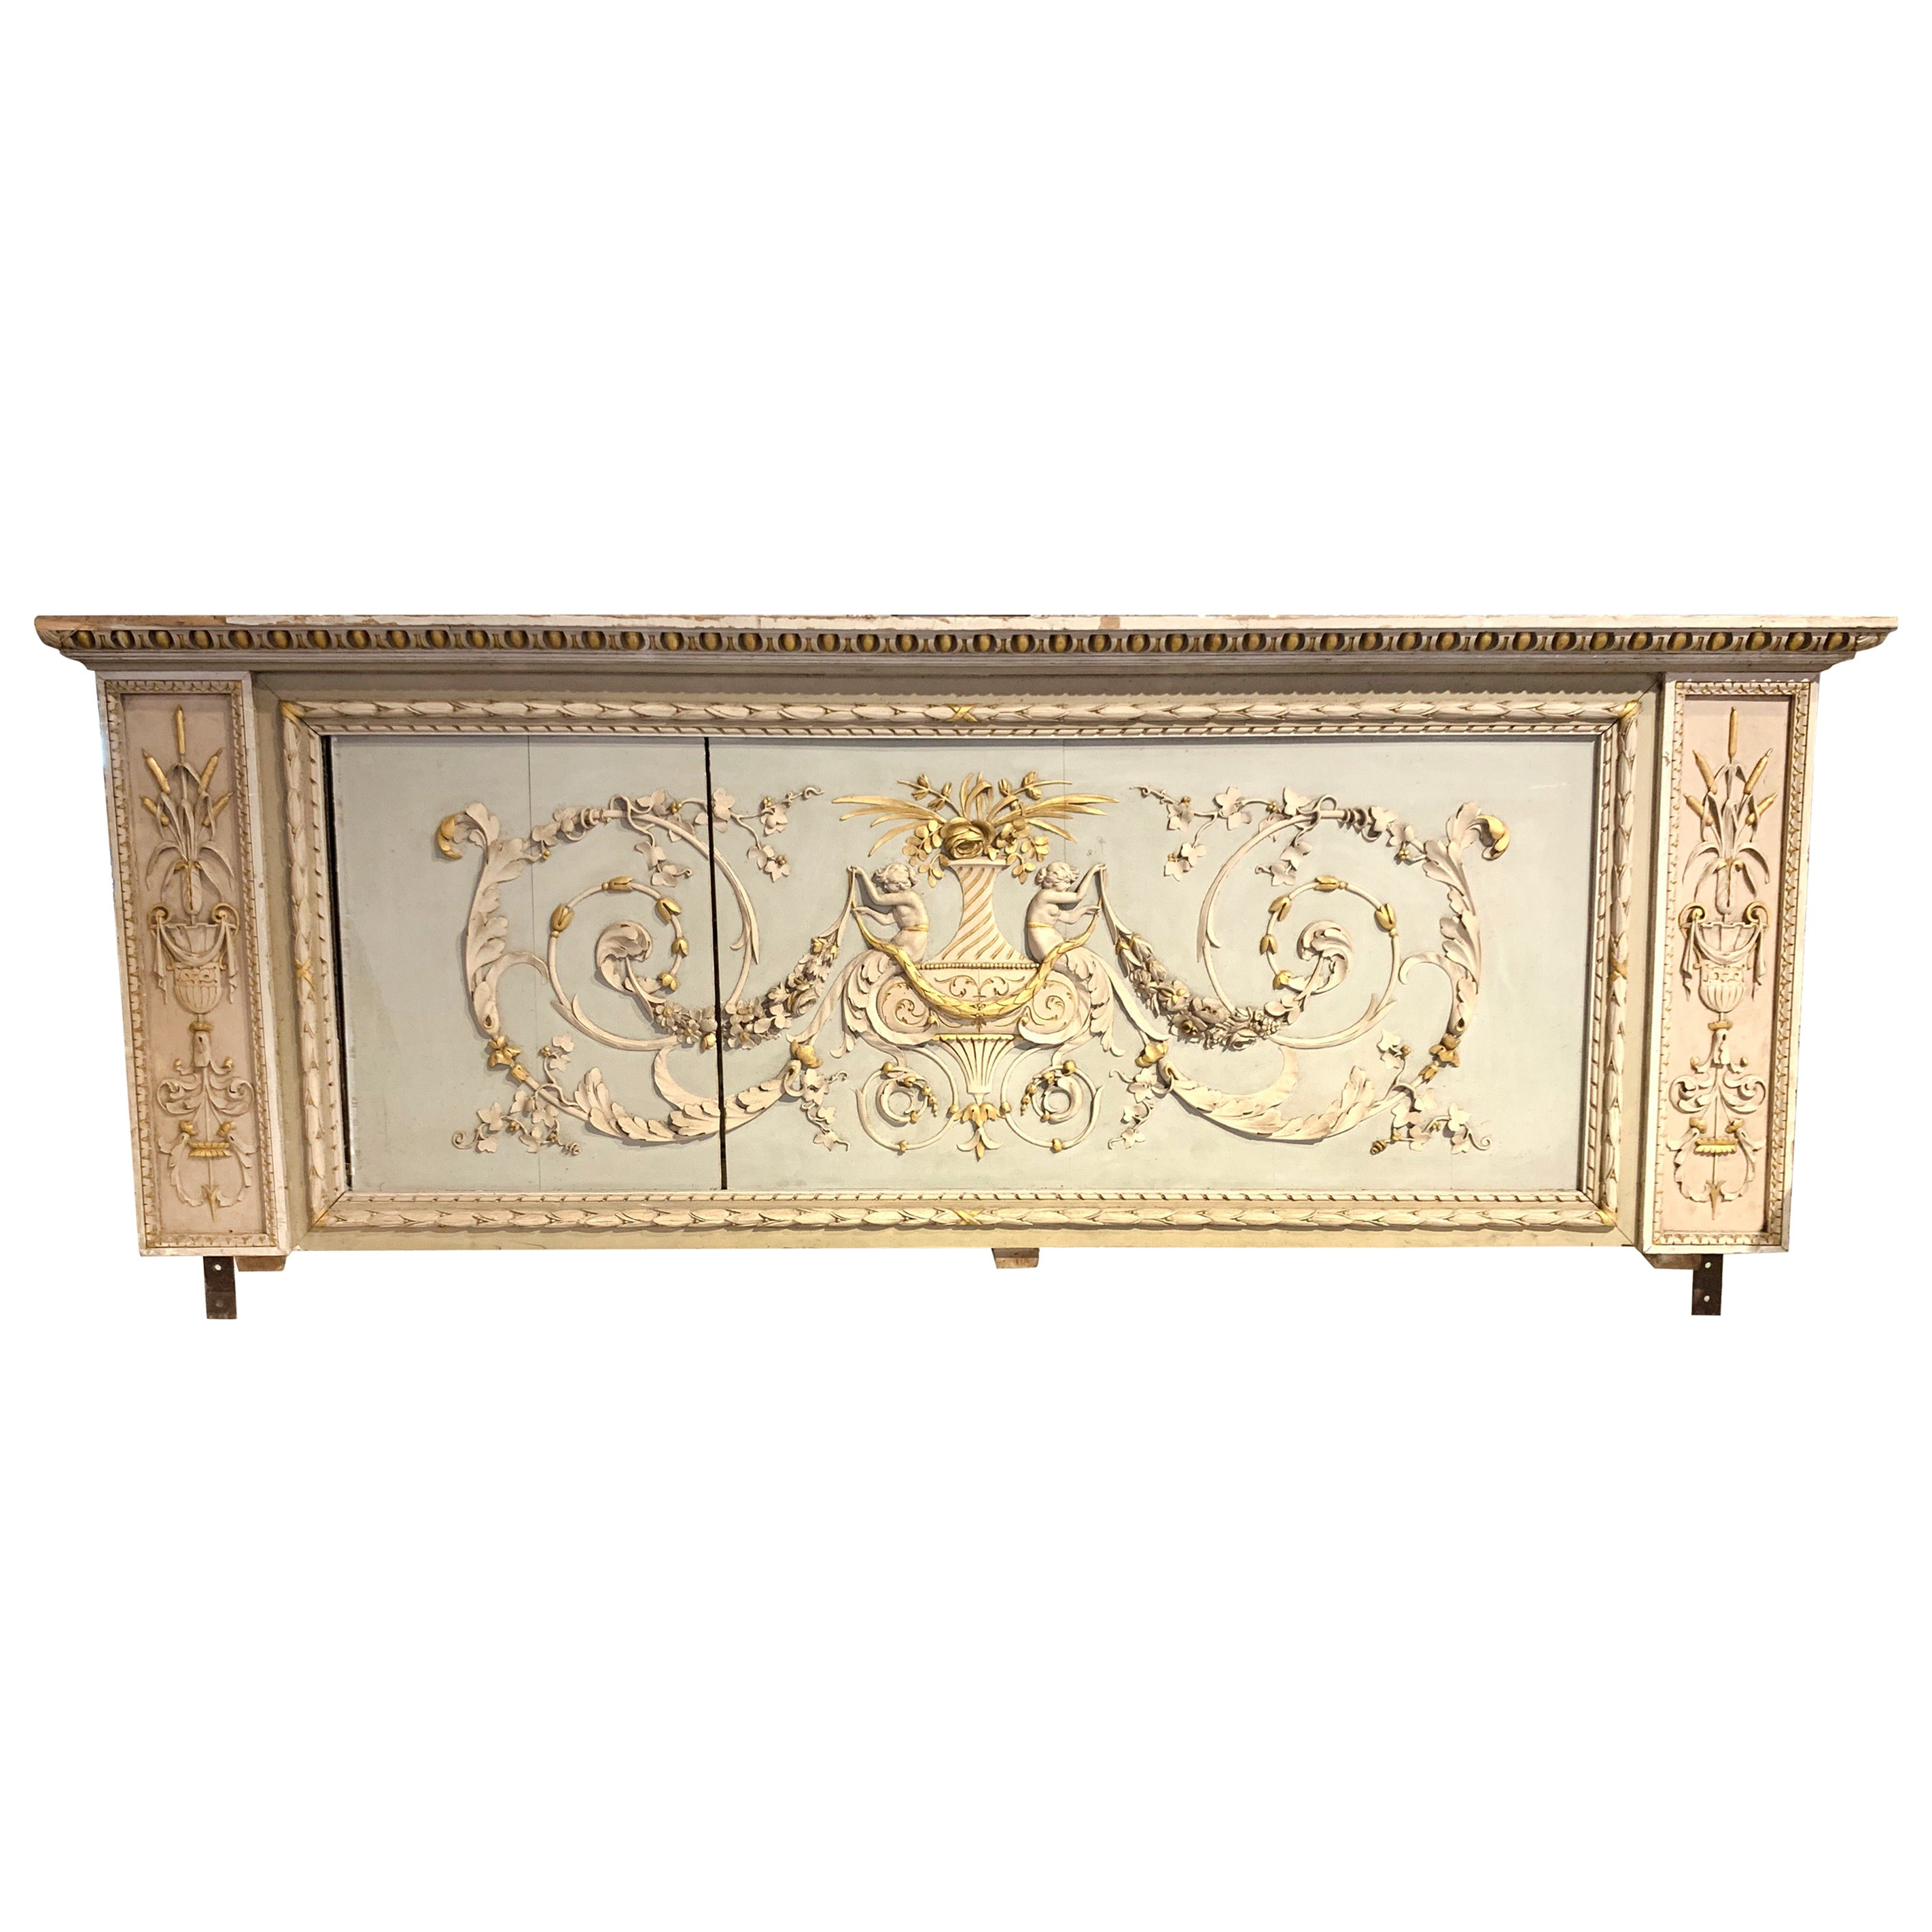 19th Century French Neoclassical Carved and Painted Panel